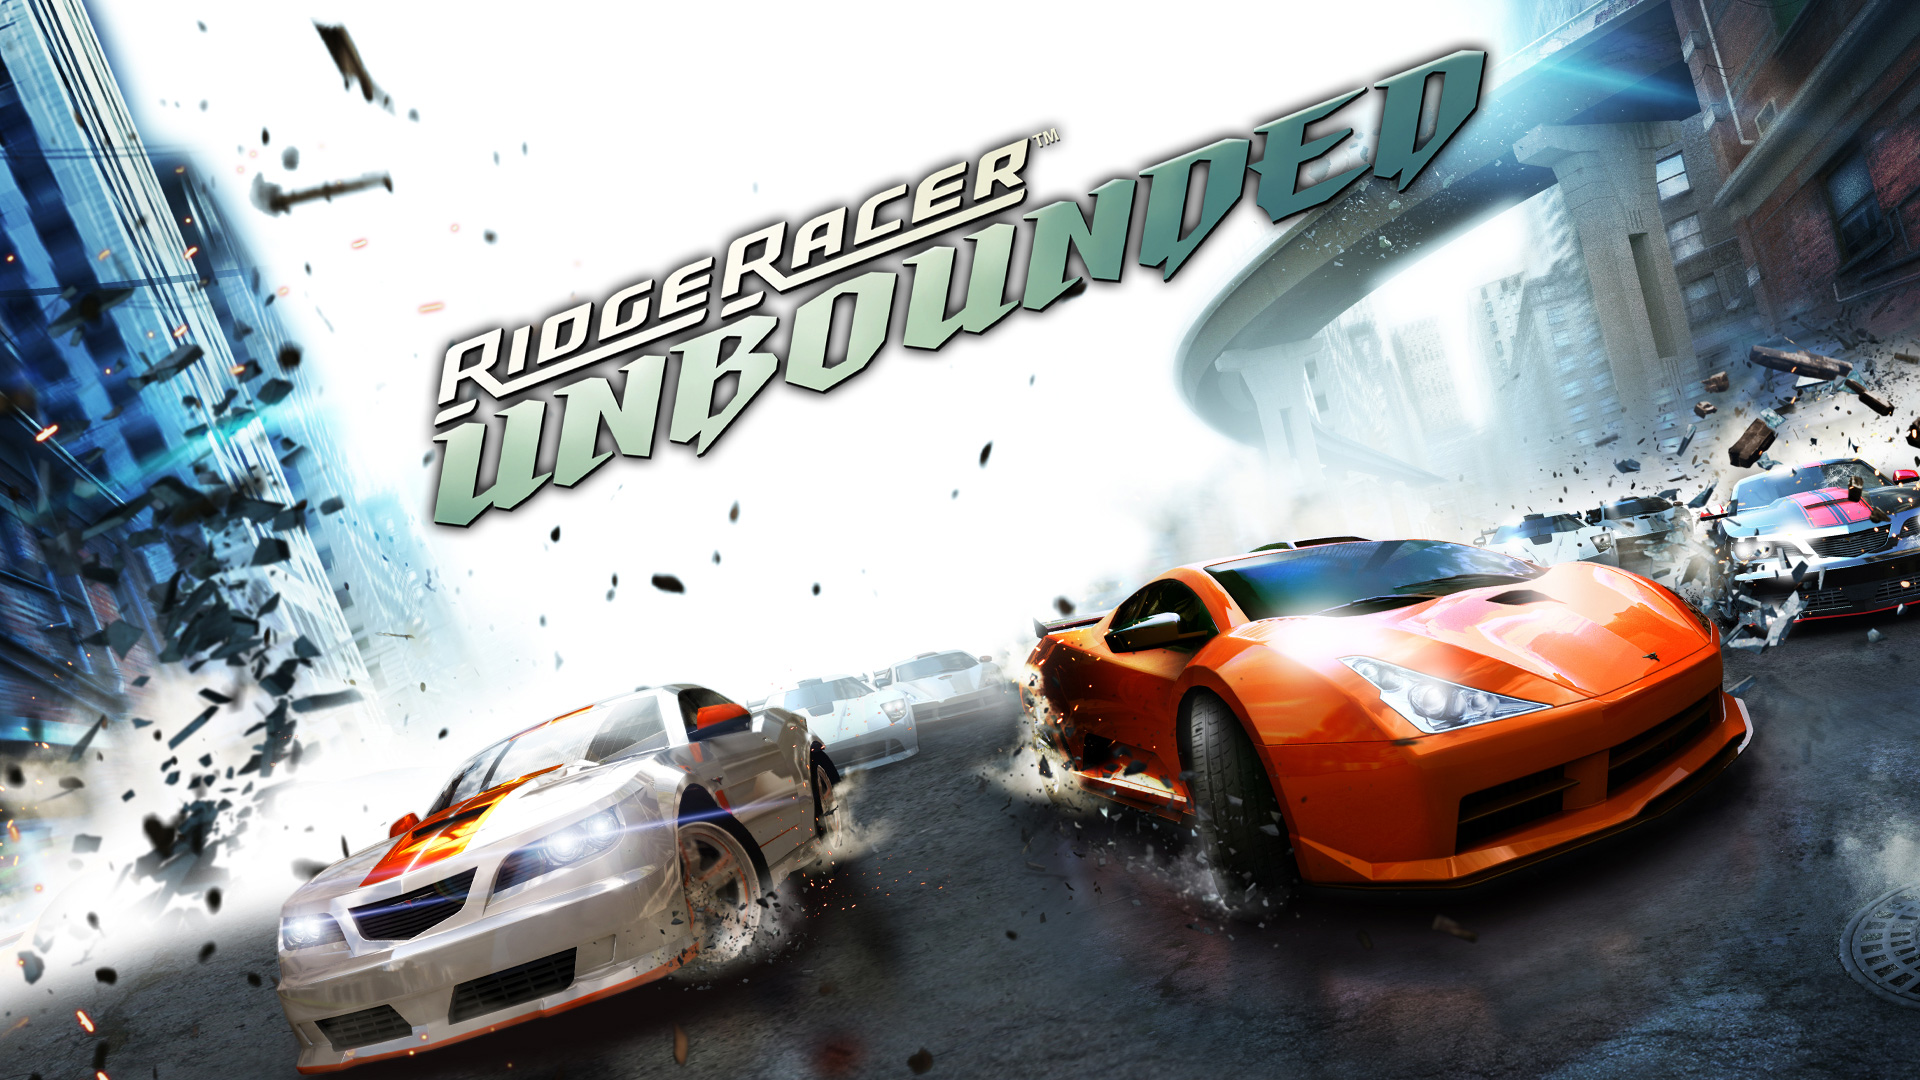 Free Ridge Racer Unbounded Wallpaper in 1920x1080